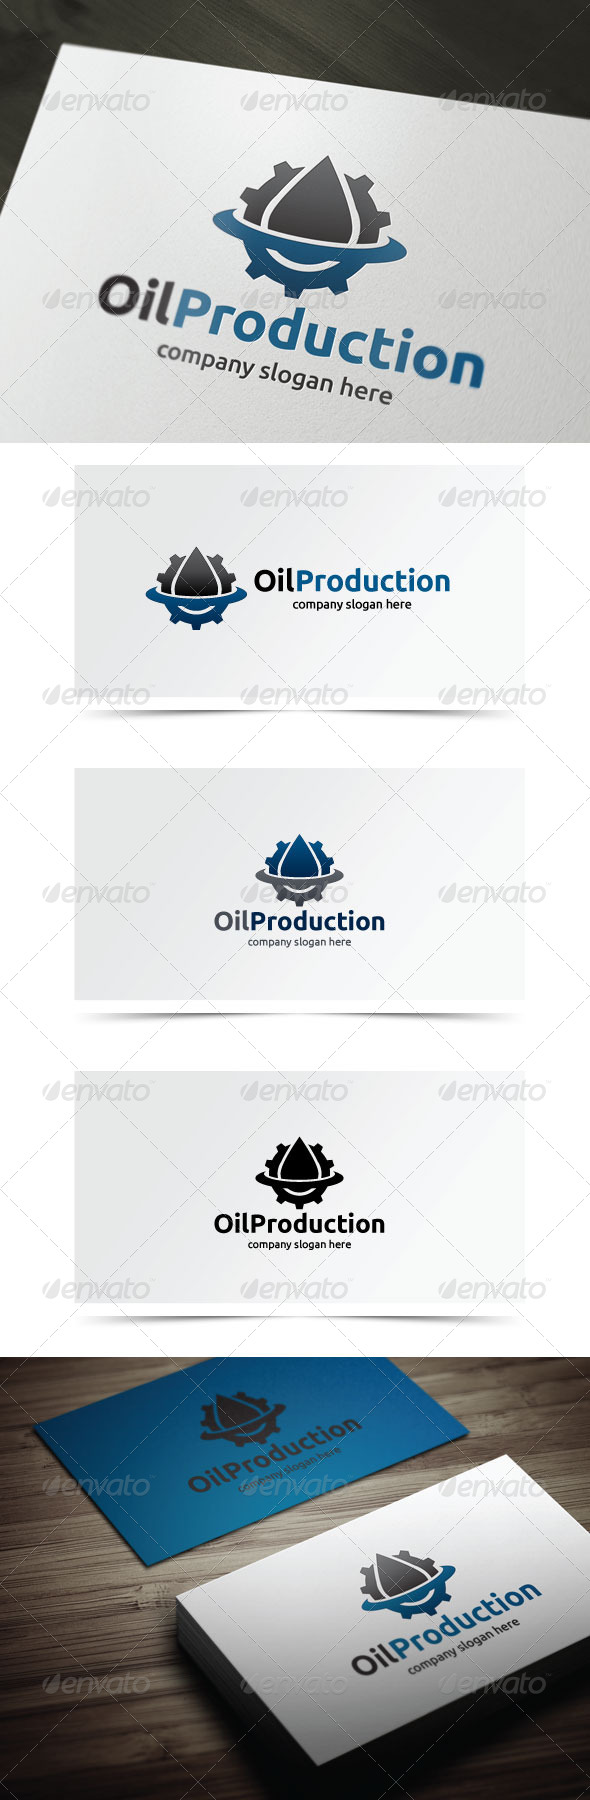 GraphicRiver Oil Production 6021303